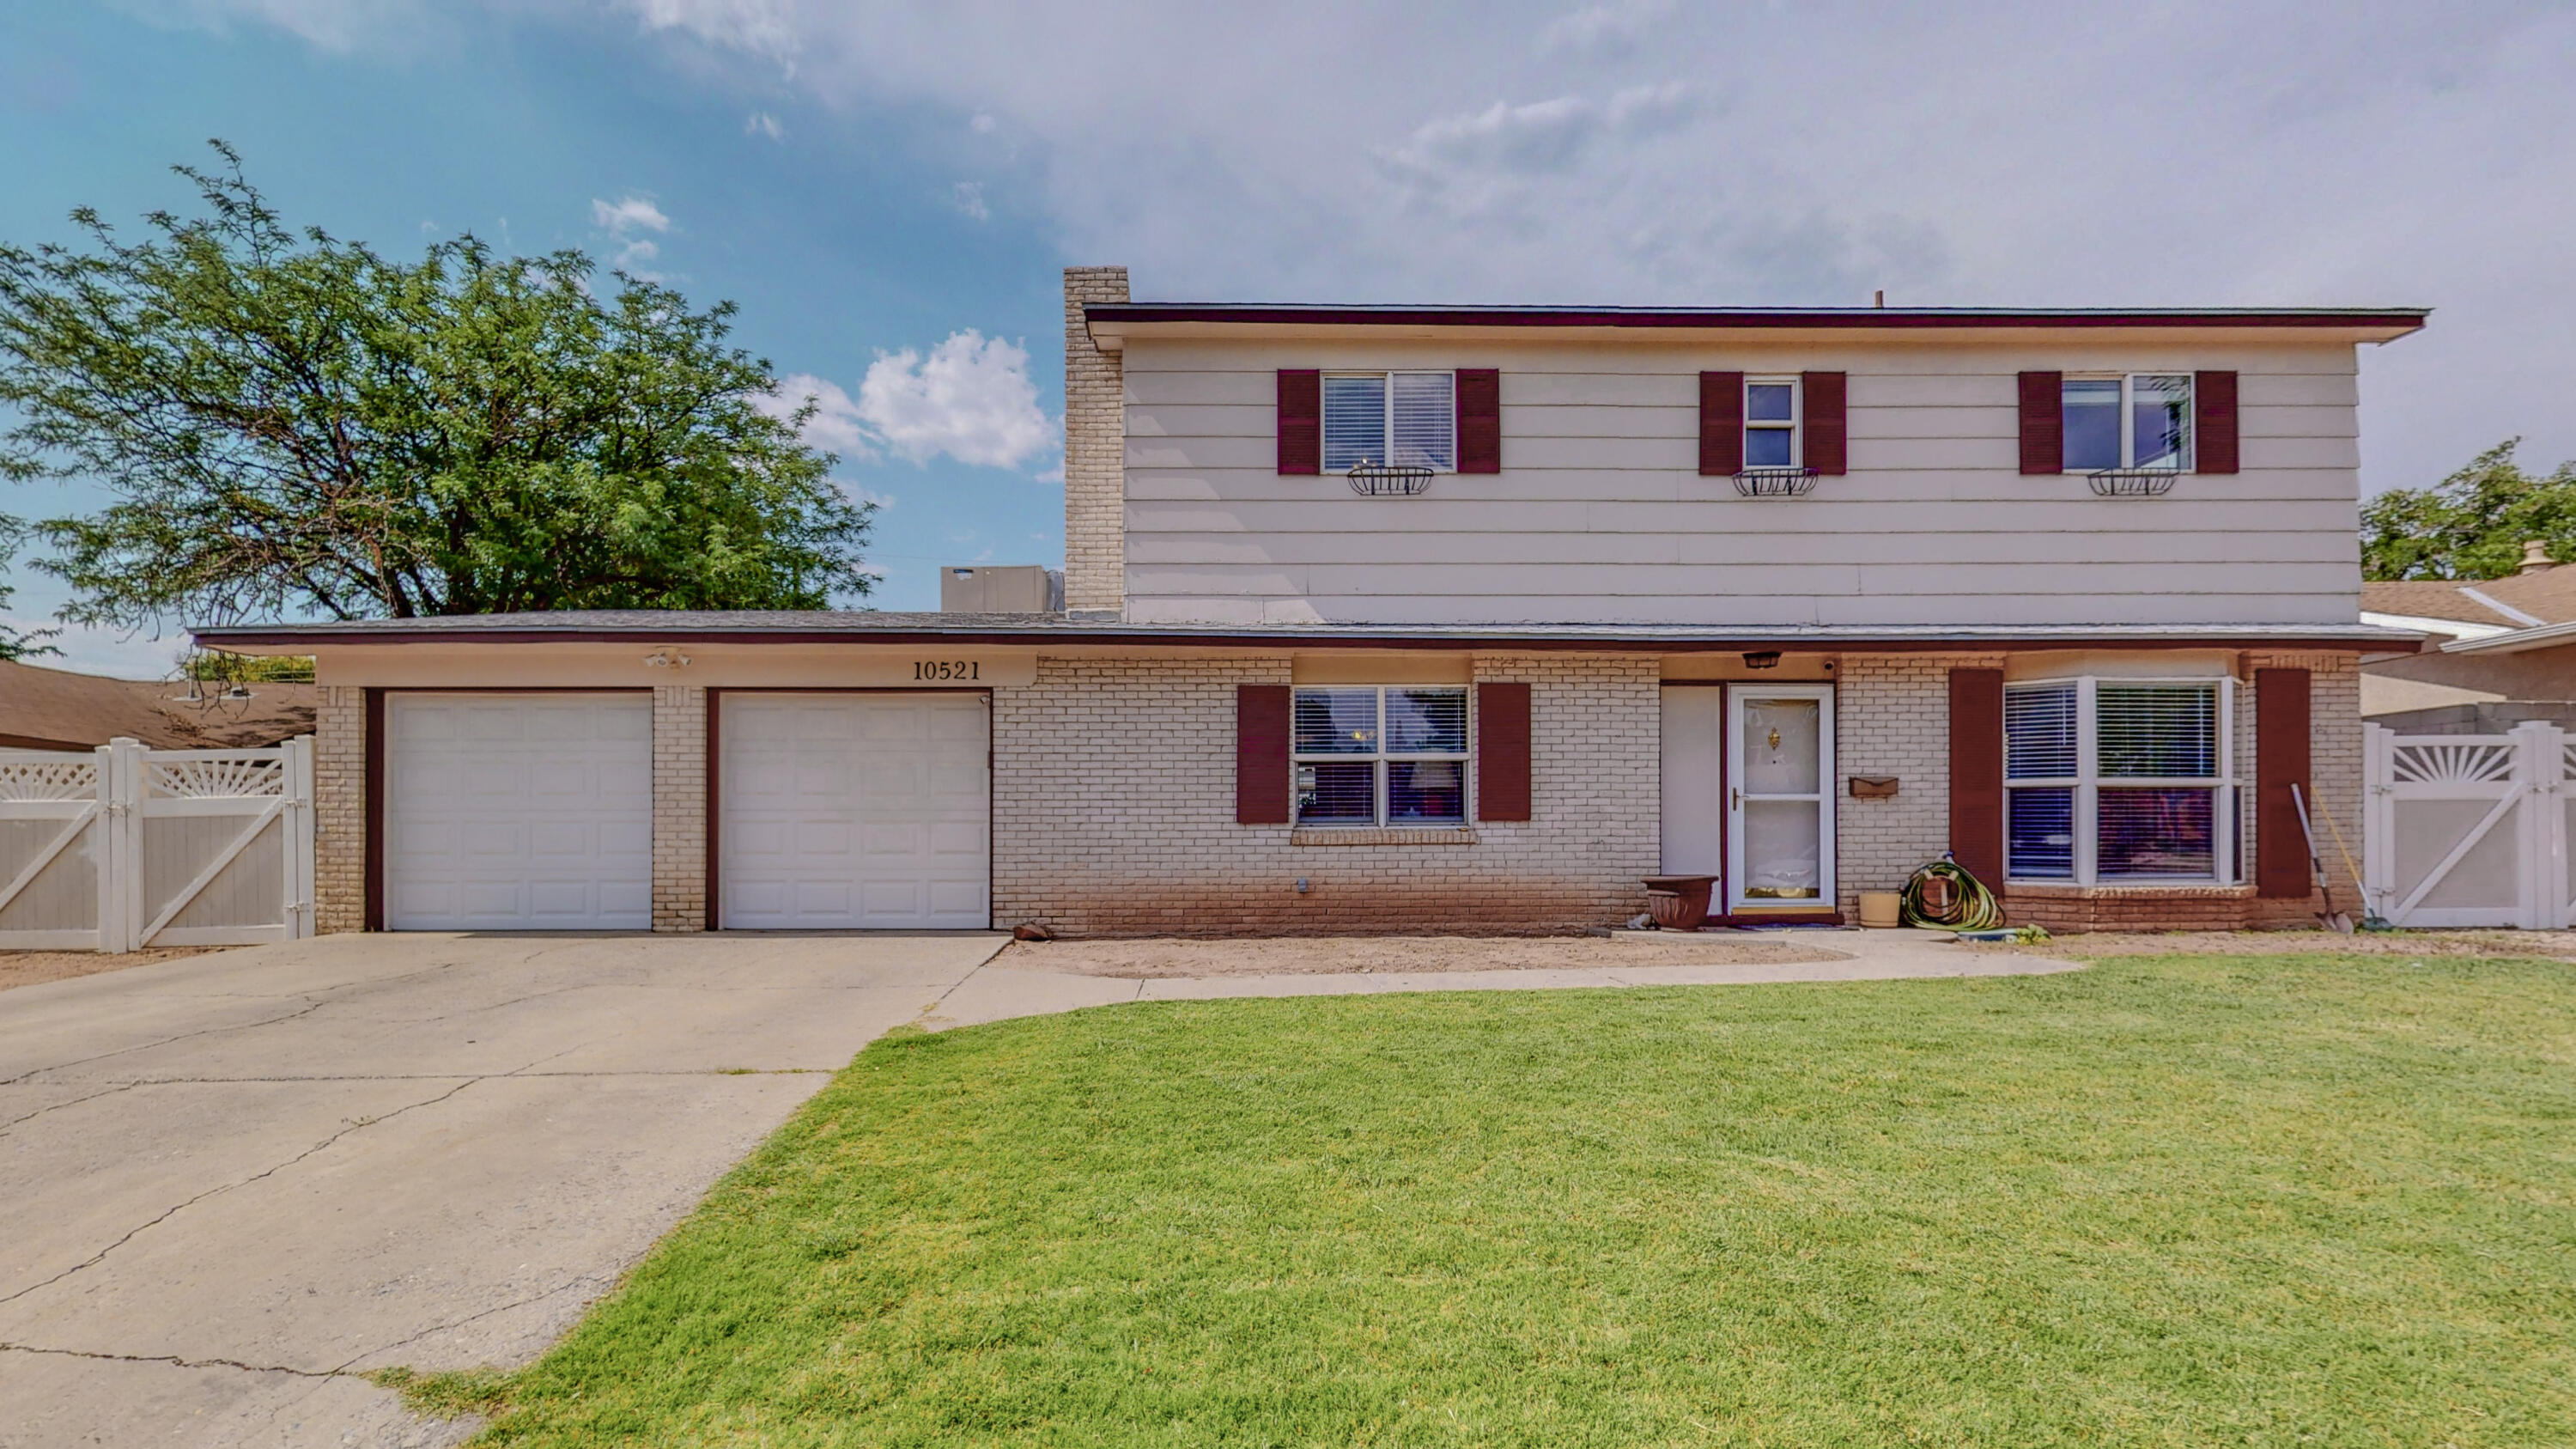 Don't miss this spacious 2 story home in the NE heights. Tons of space for the whole with 2 living areas downstairs and large backyard. This home offers a laundry area with enough space to be used as a craft area or office. Easy access to shopping and restaurants. Schedule your showing today!